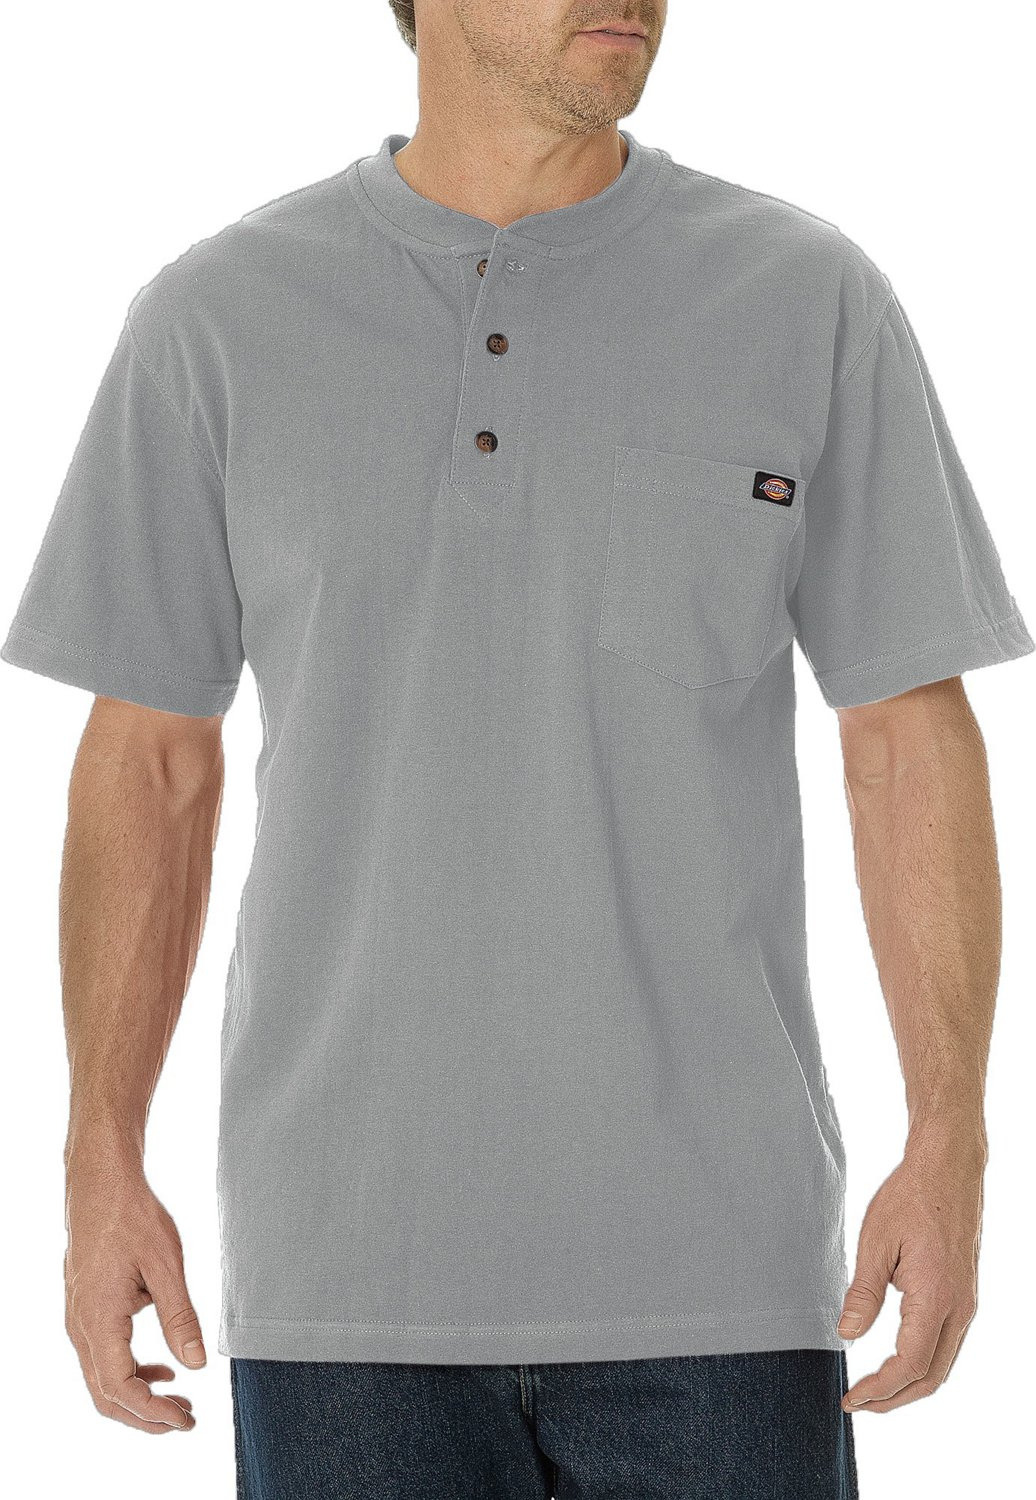 627d190784a6 Display product reviews for Dickies Men s Short Sleeve Heavyweight Henley